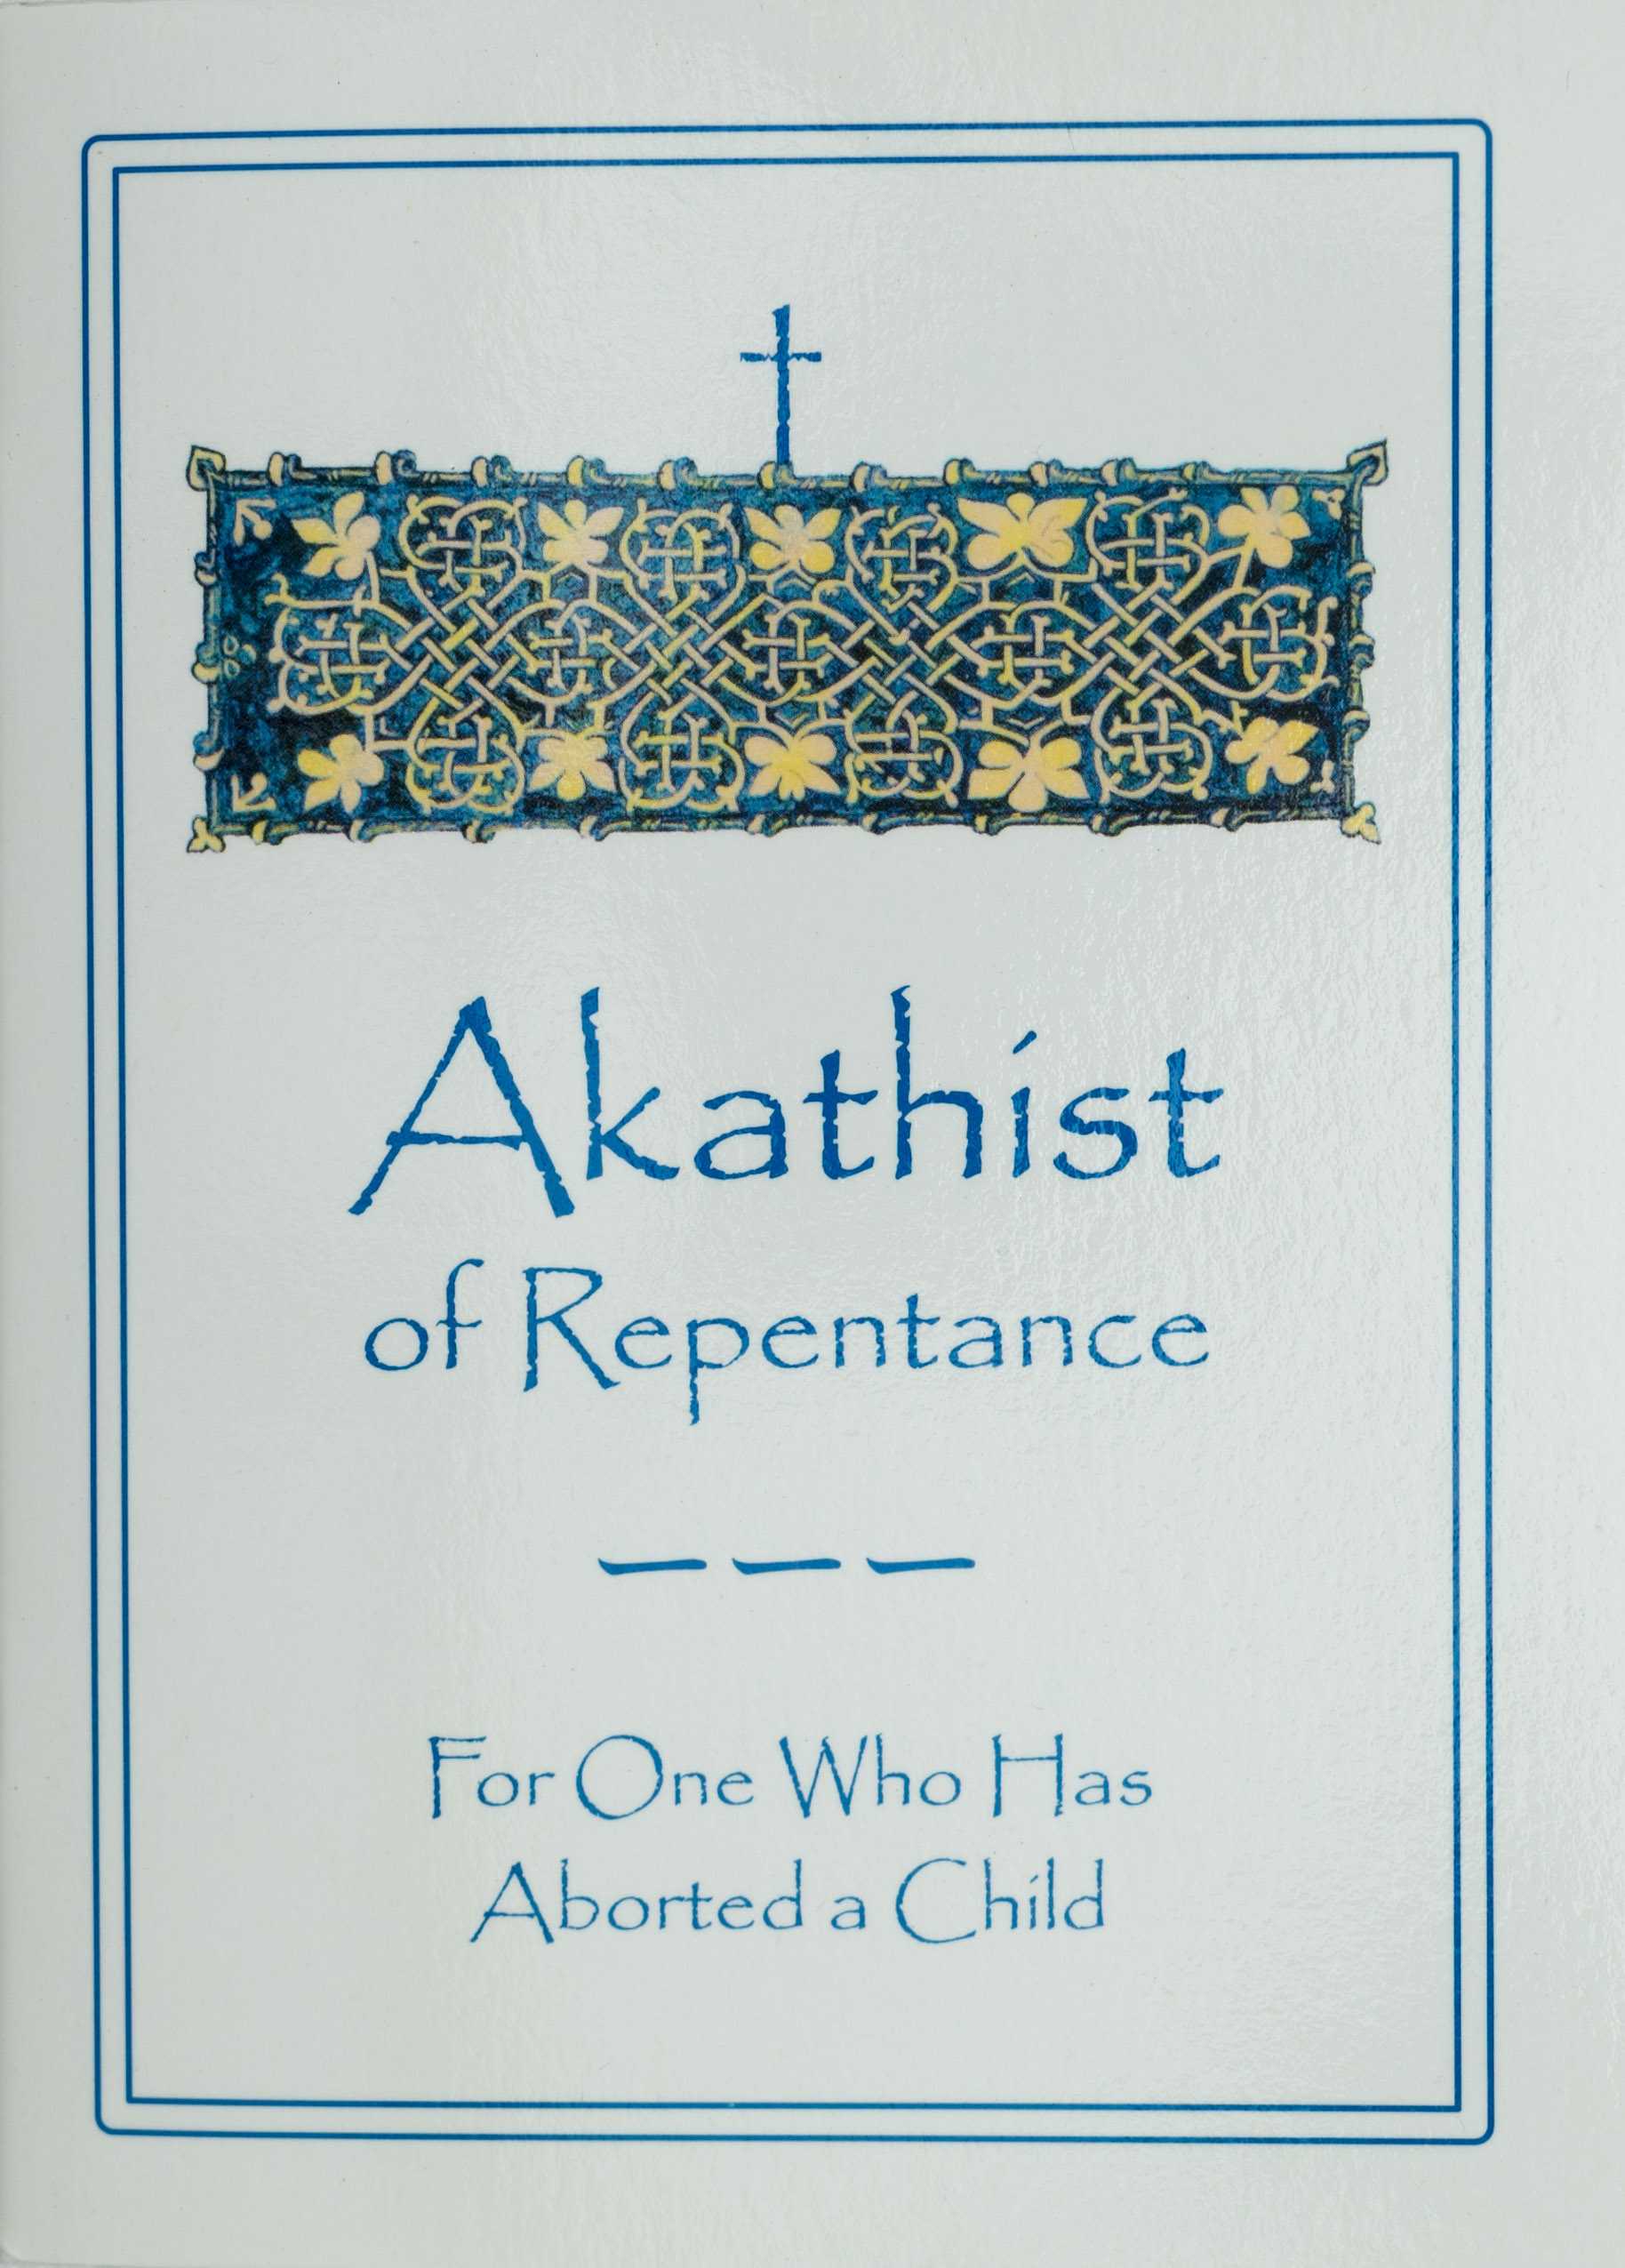 Akathist for Repentance for One Who Has Aborted a Child